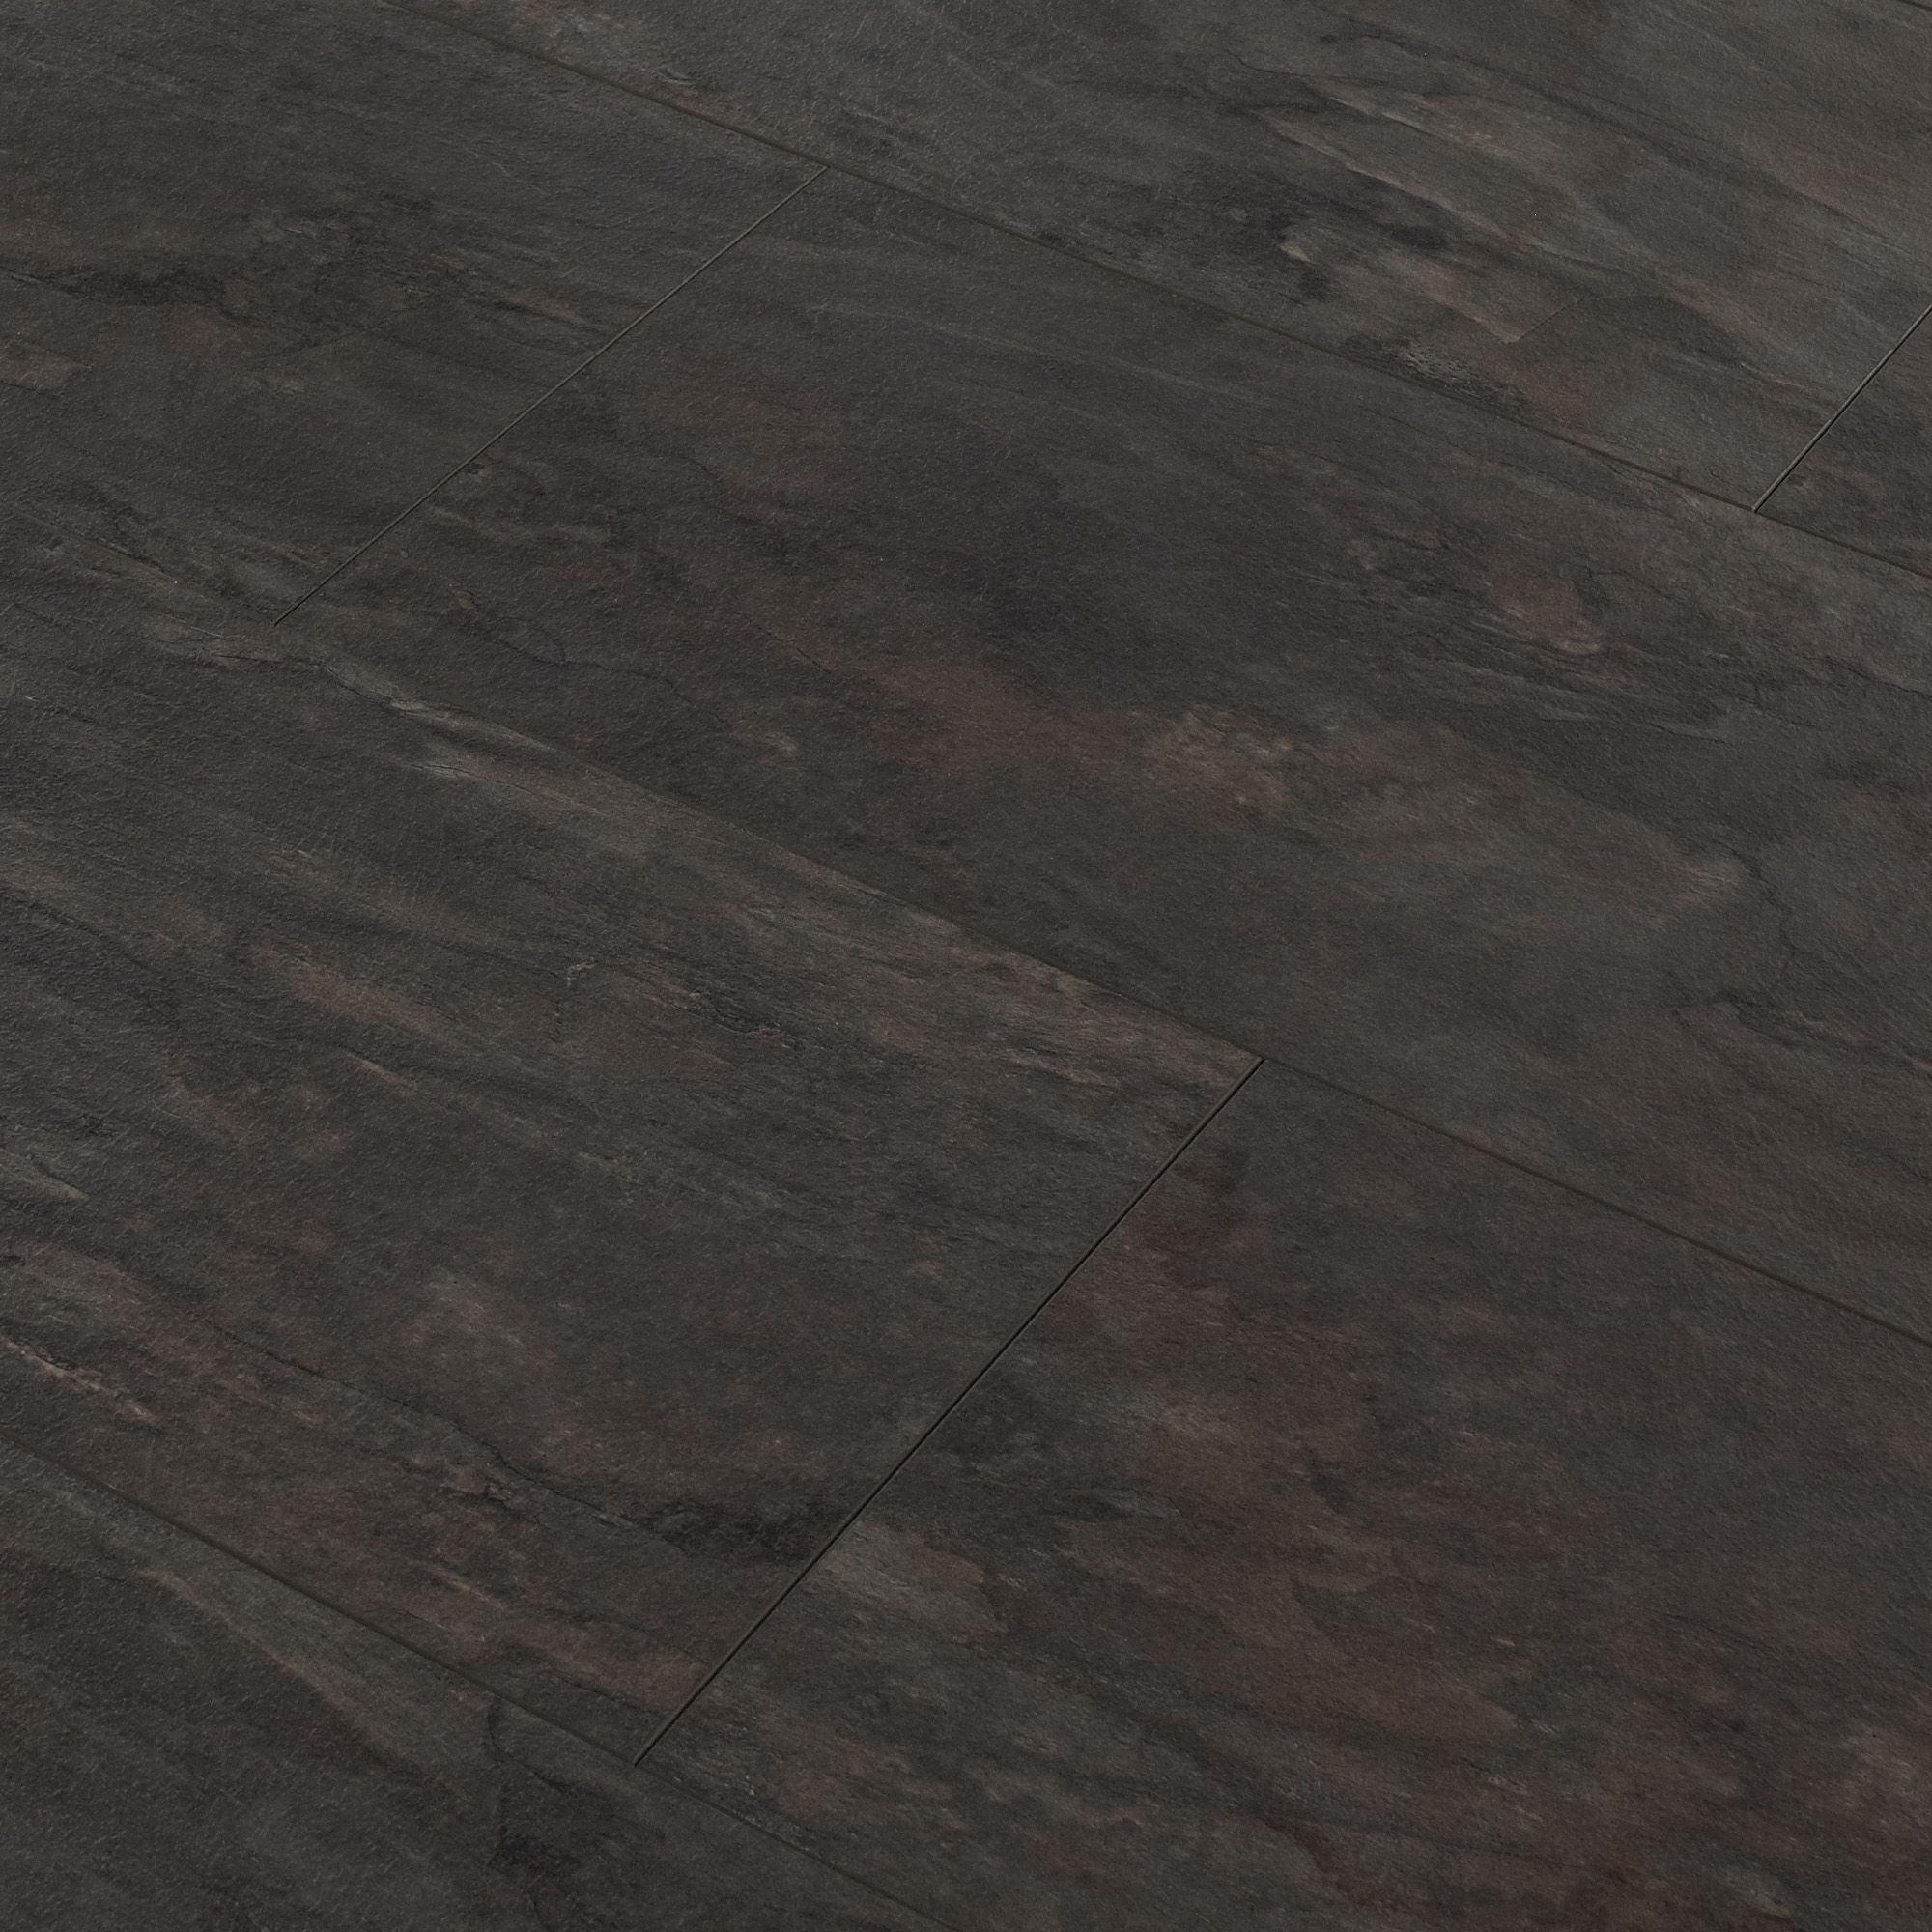 Libretto black slate tile effect laminate flooring m for Laminate tile squares